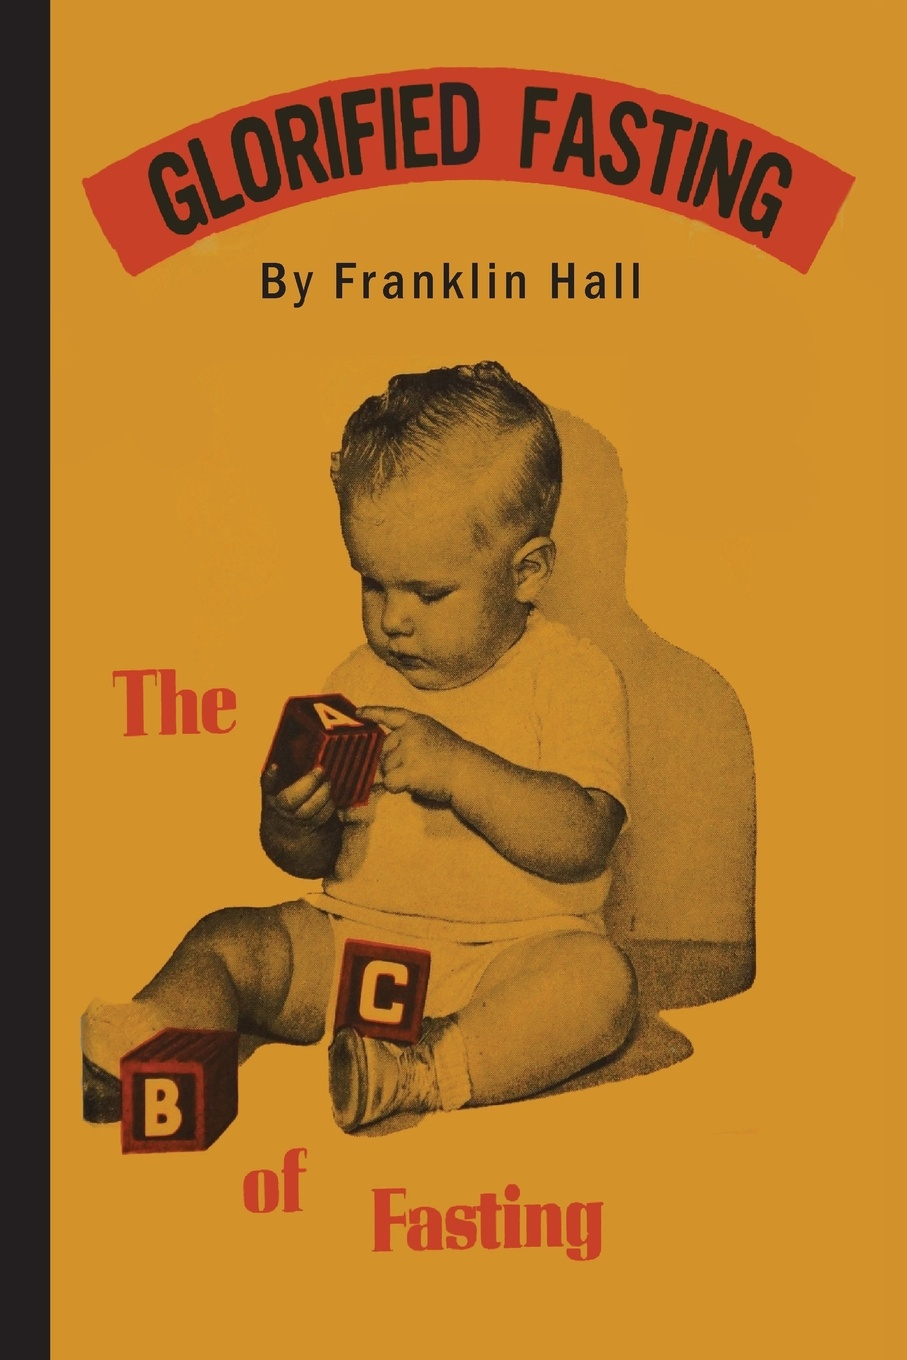 Franklin Hall Glorified Fasting. The Abc of Fasting